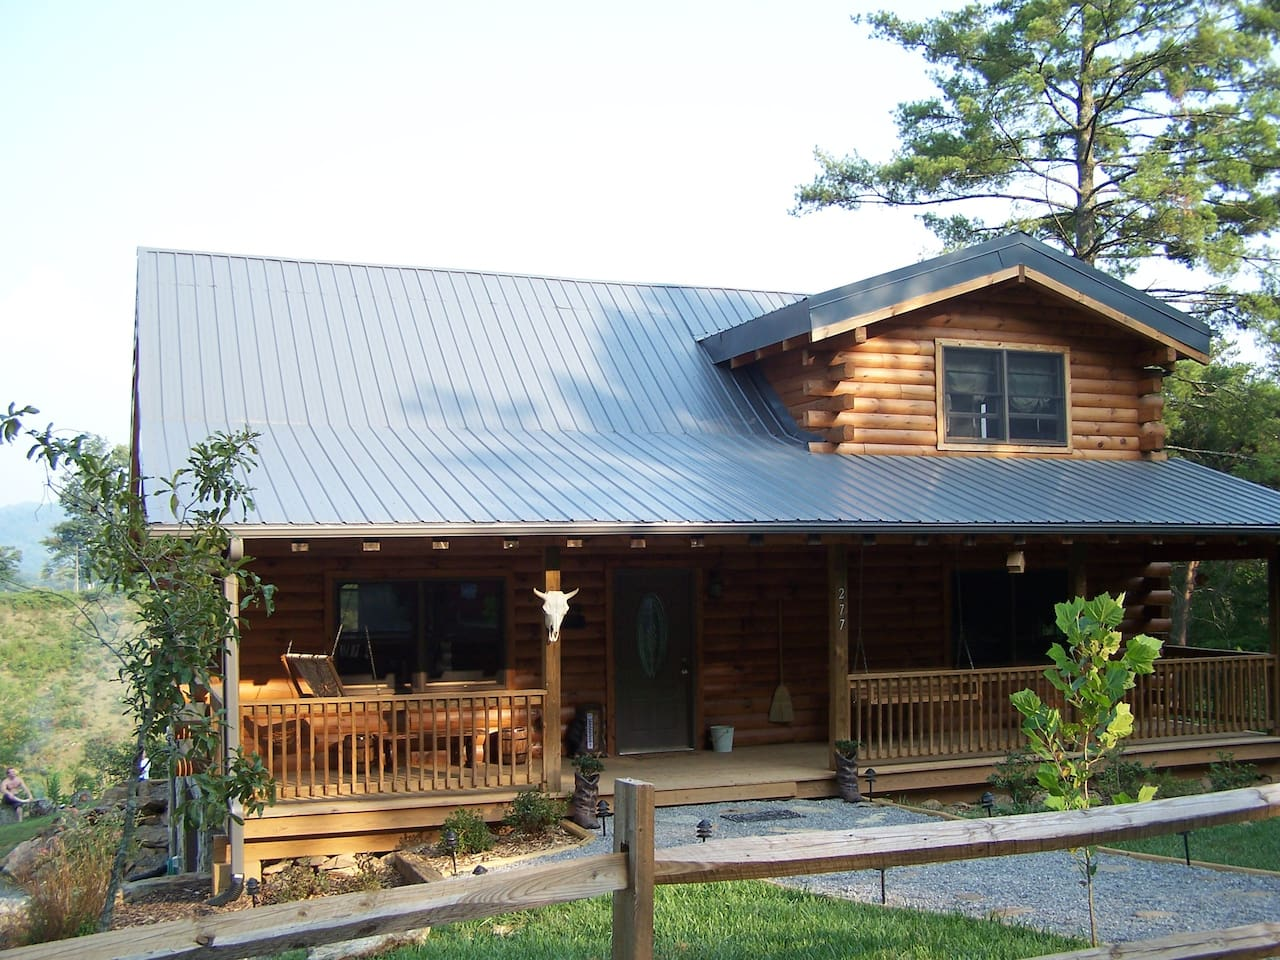 The front on Bison Overlook Lodge